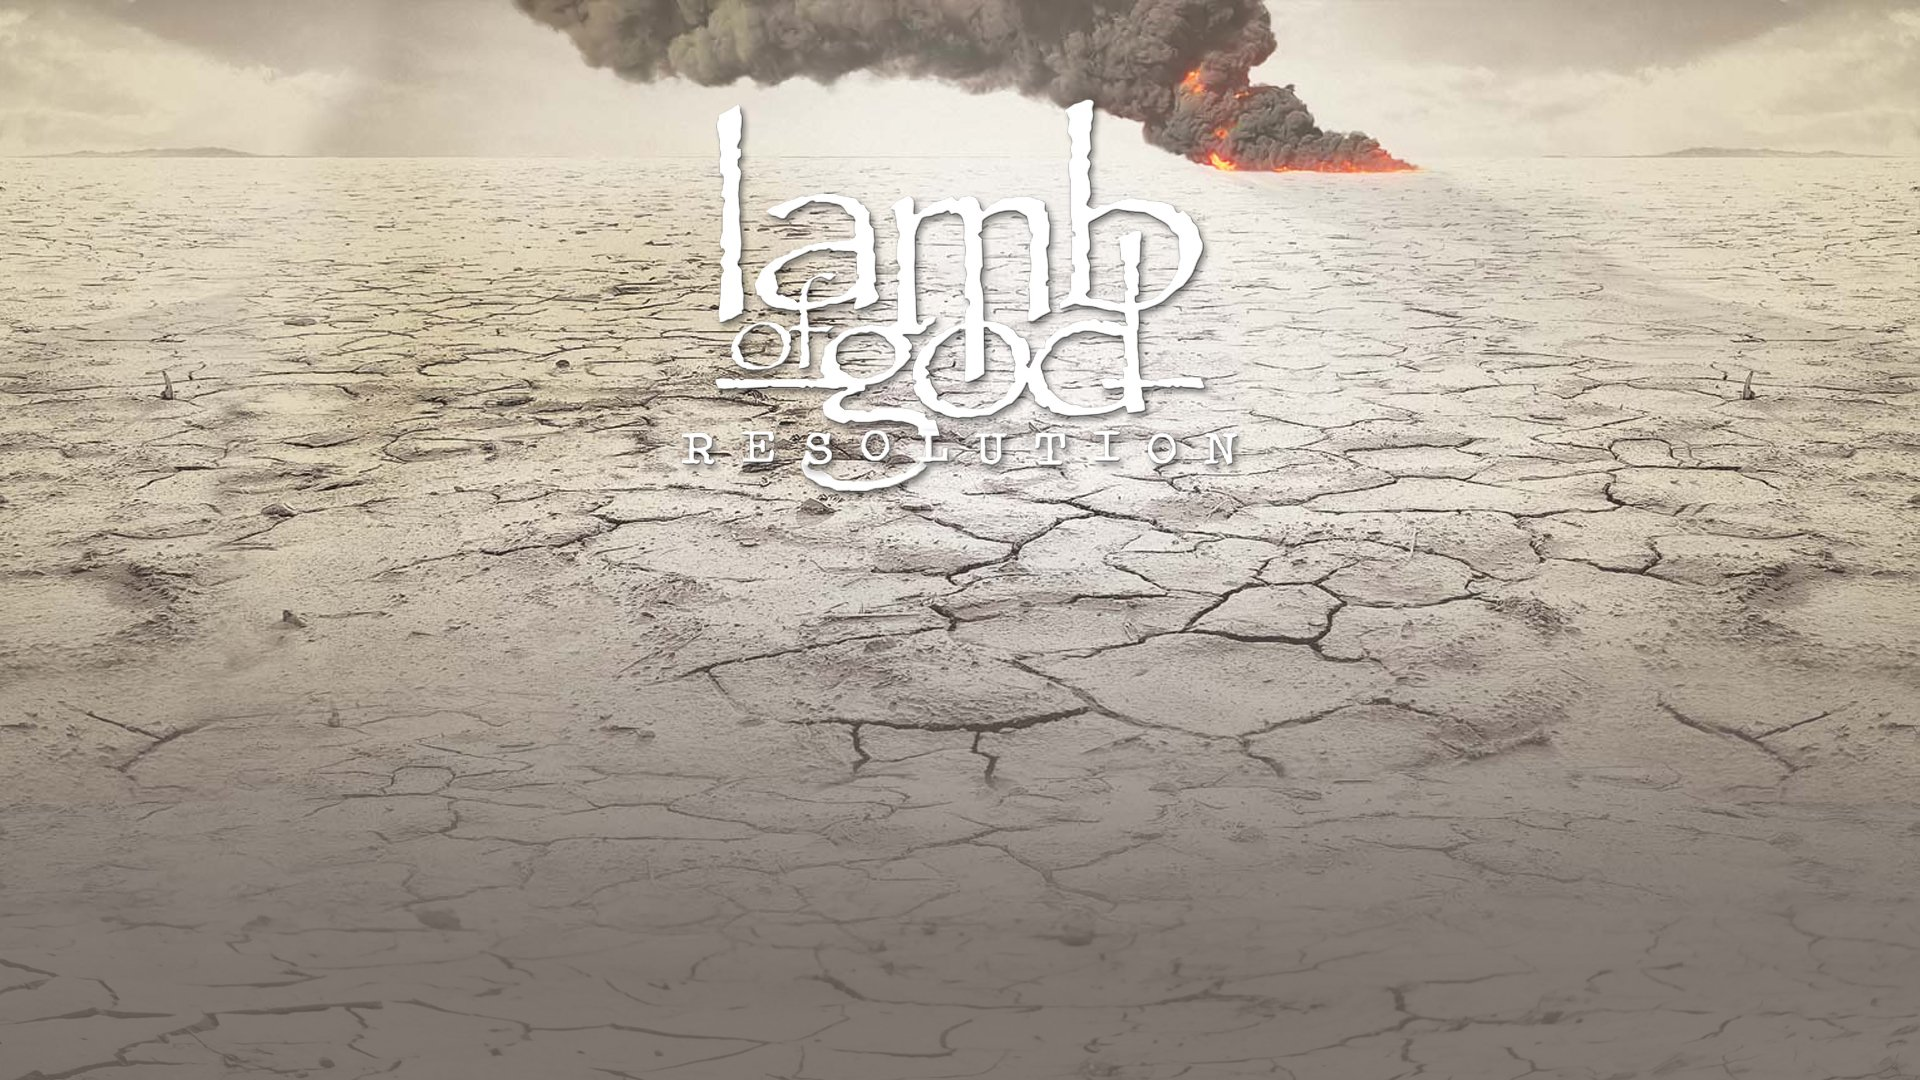 Iphone Wallpaper God Quotes Lamb Of God Full Hd Wallpaper And Background Image